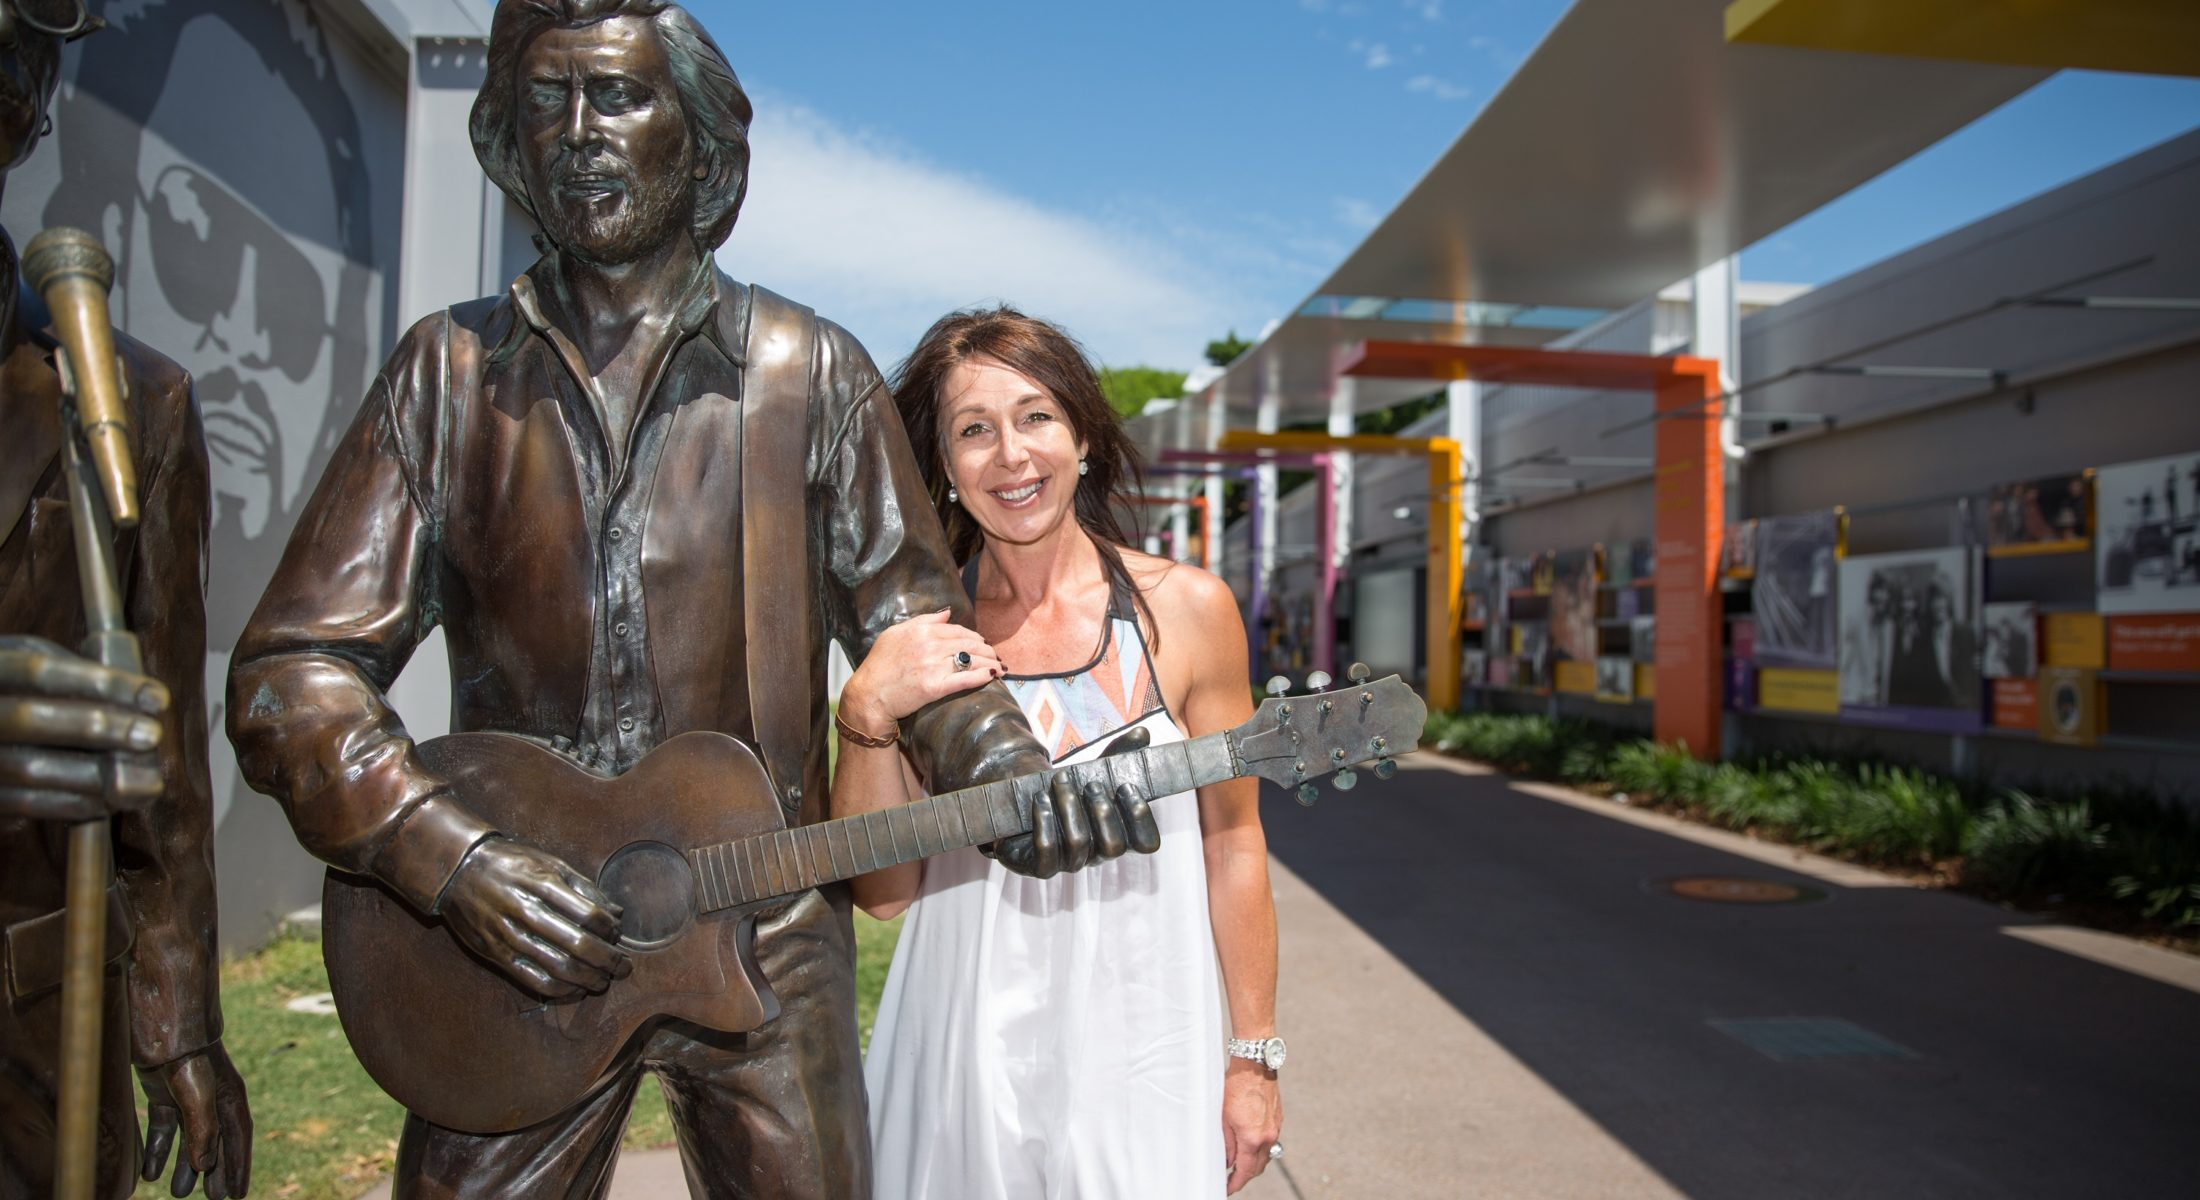 Bee Gees Way Barry Gibb Statue With Woman Redcliffe In Moreton Bay Region 2